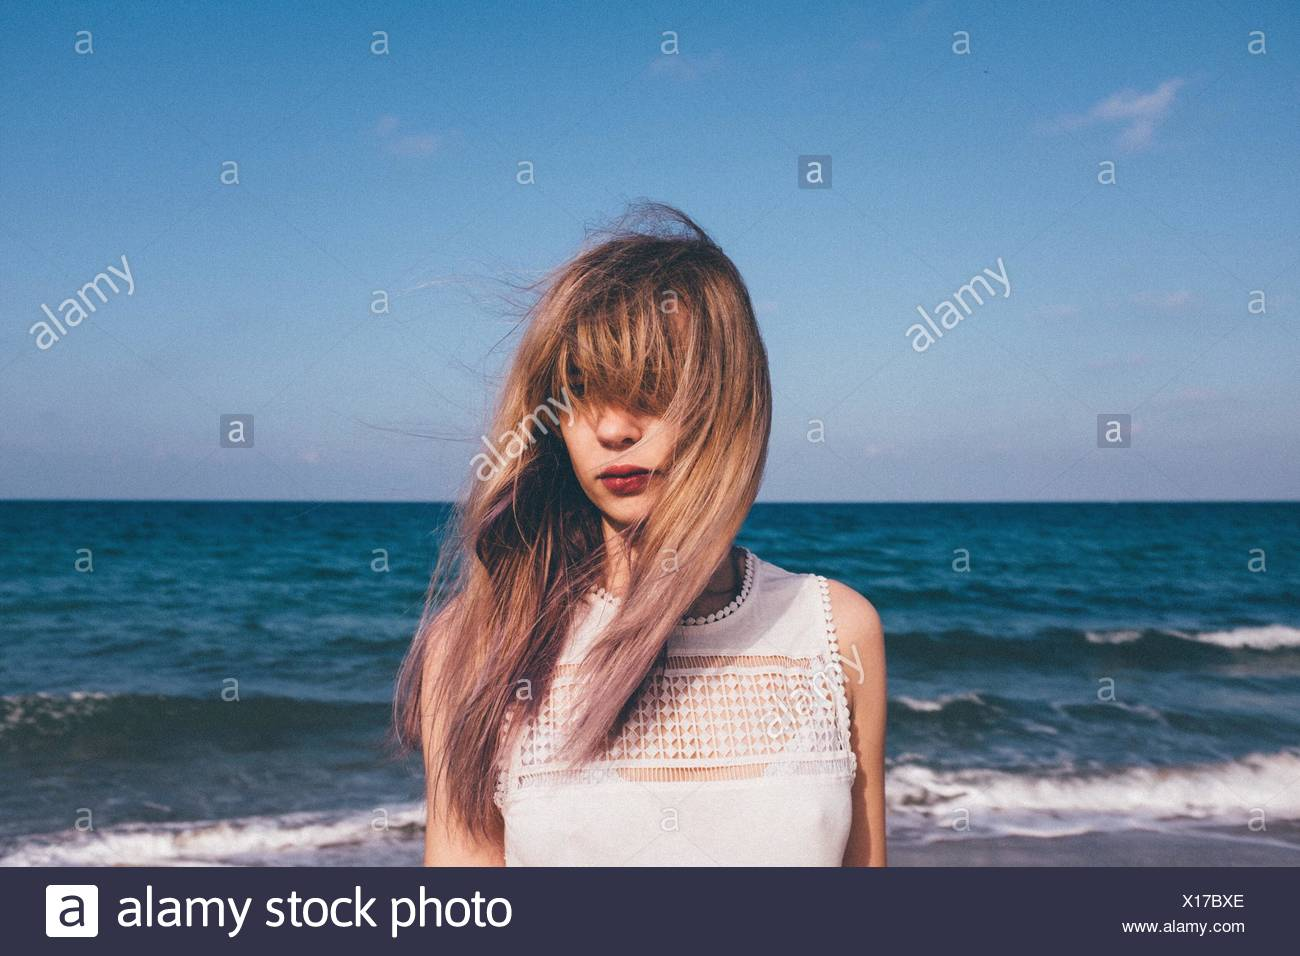 Front View Of Woman Standing At Sea Shore Against Sky - Stock Image